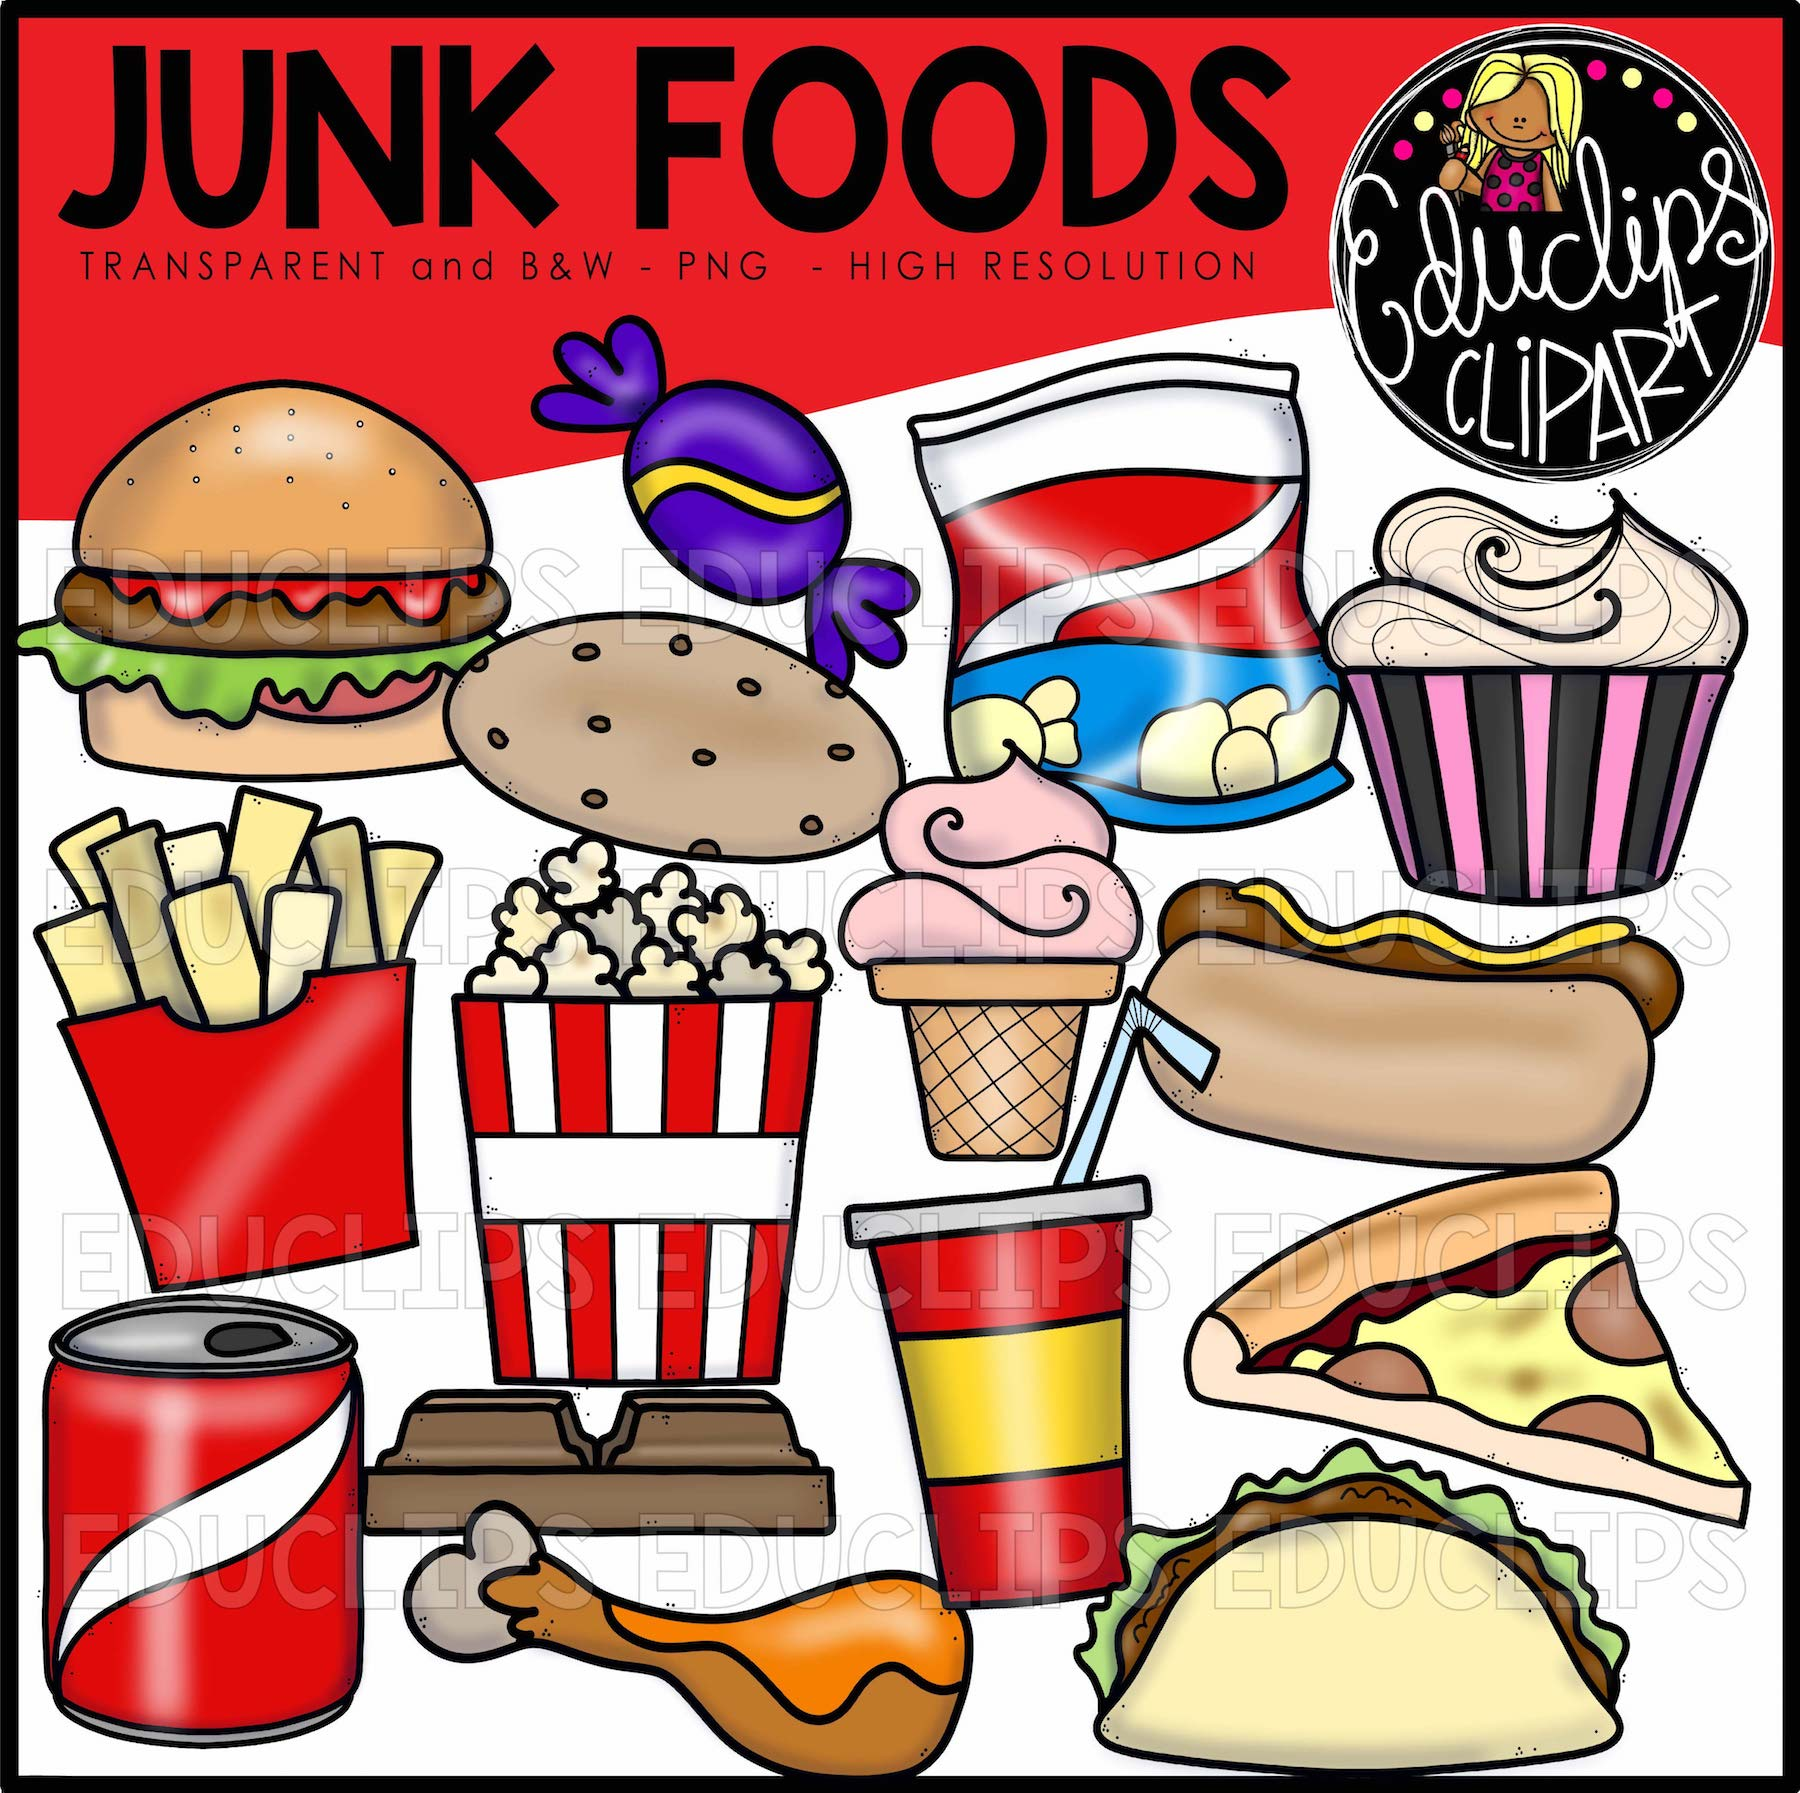 junk foods clip art bundle color and b w welcome to educlips store rh edu clips com junk food clipart free animated junk food clipart